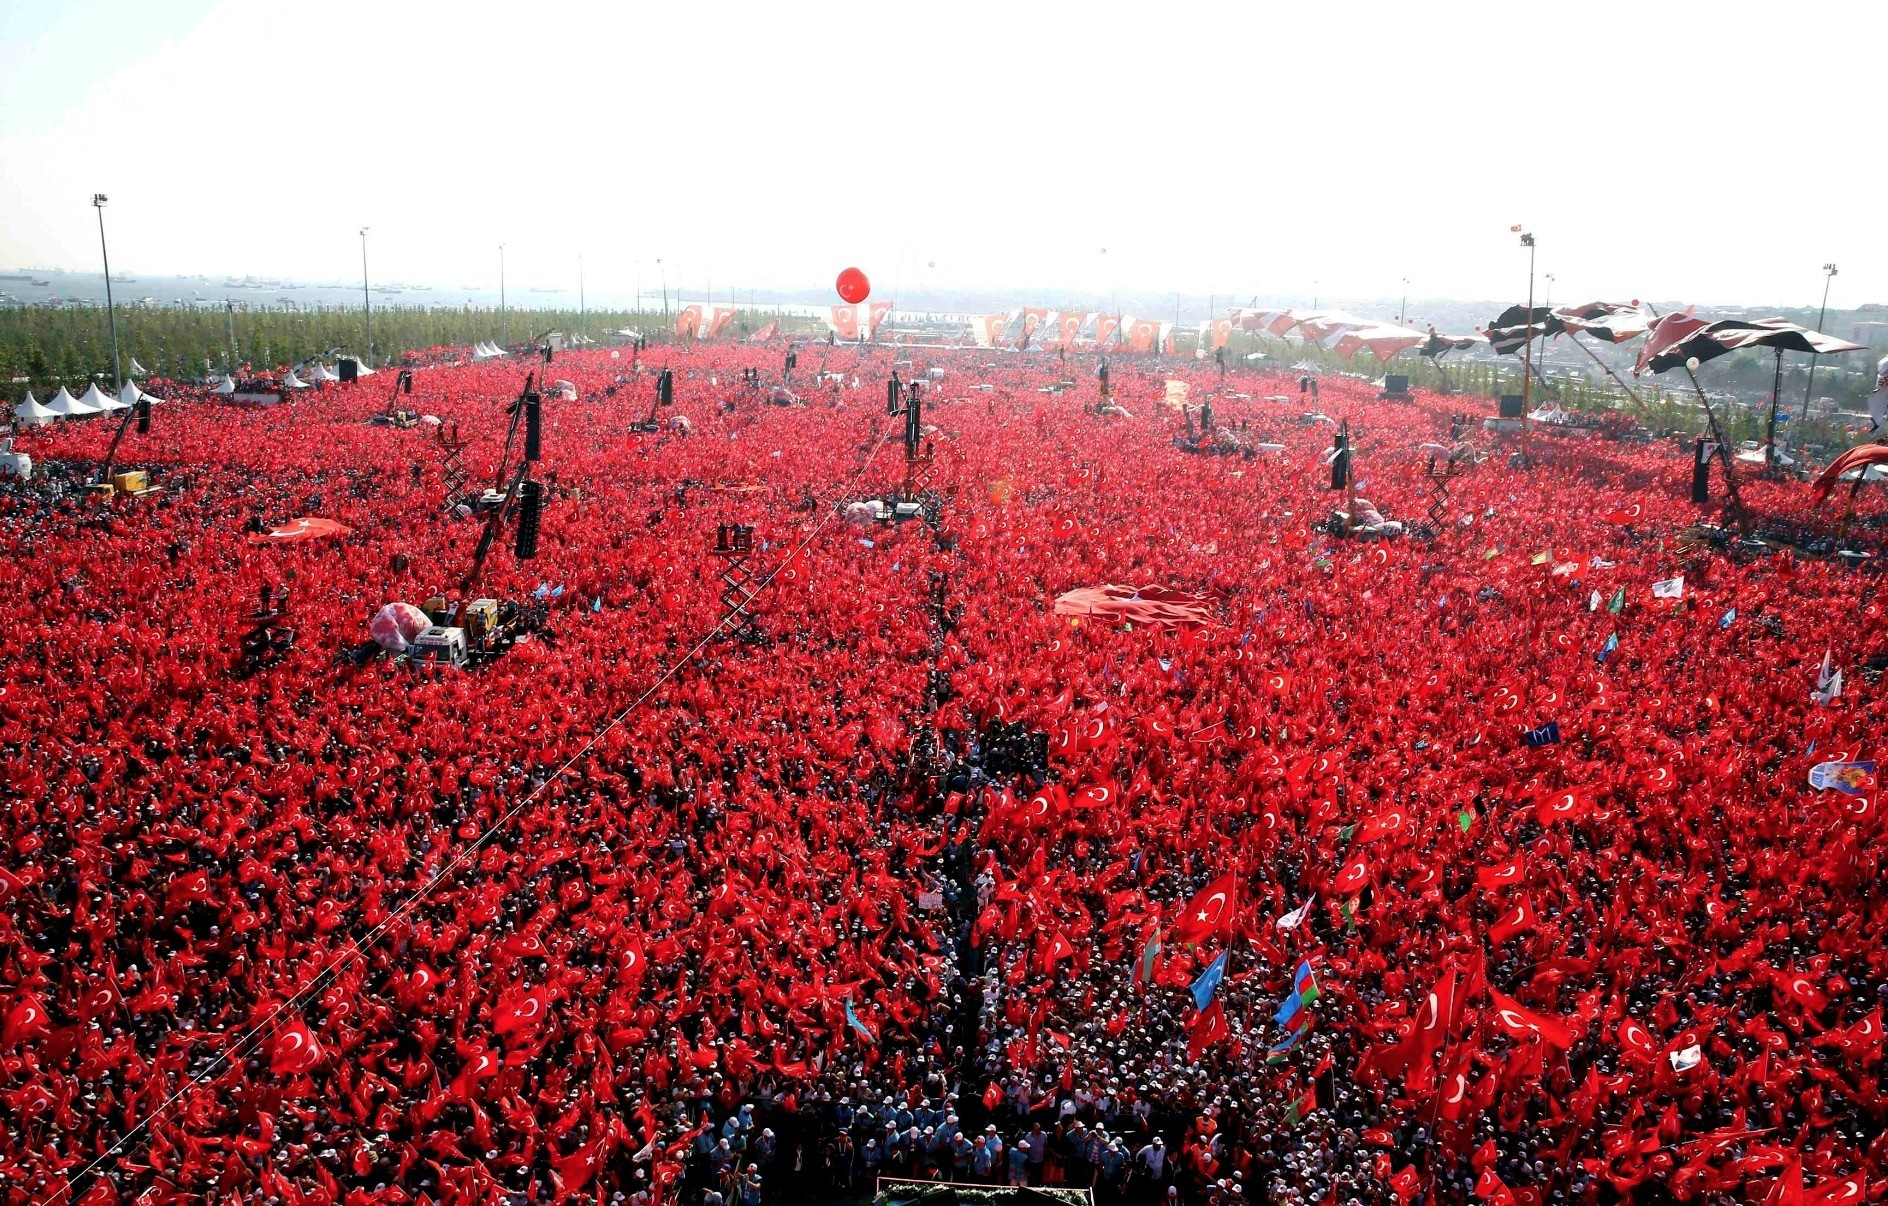 Last yearu2019s democracy watch protests after the failed July 15 coup attempt culminated in a million-strong rally in Istanbulu2019s Yenikapu0131 on Aug. 7, 2016.